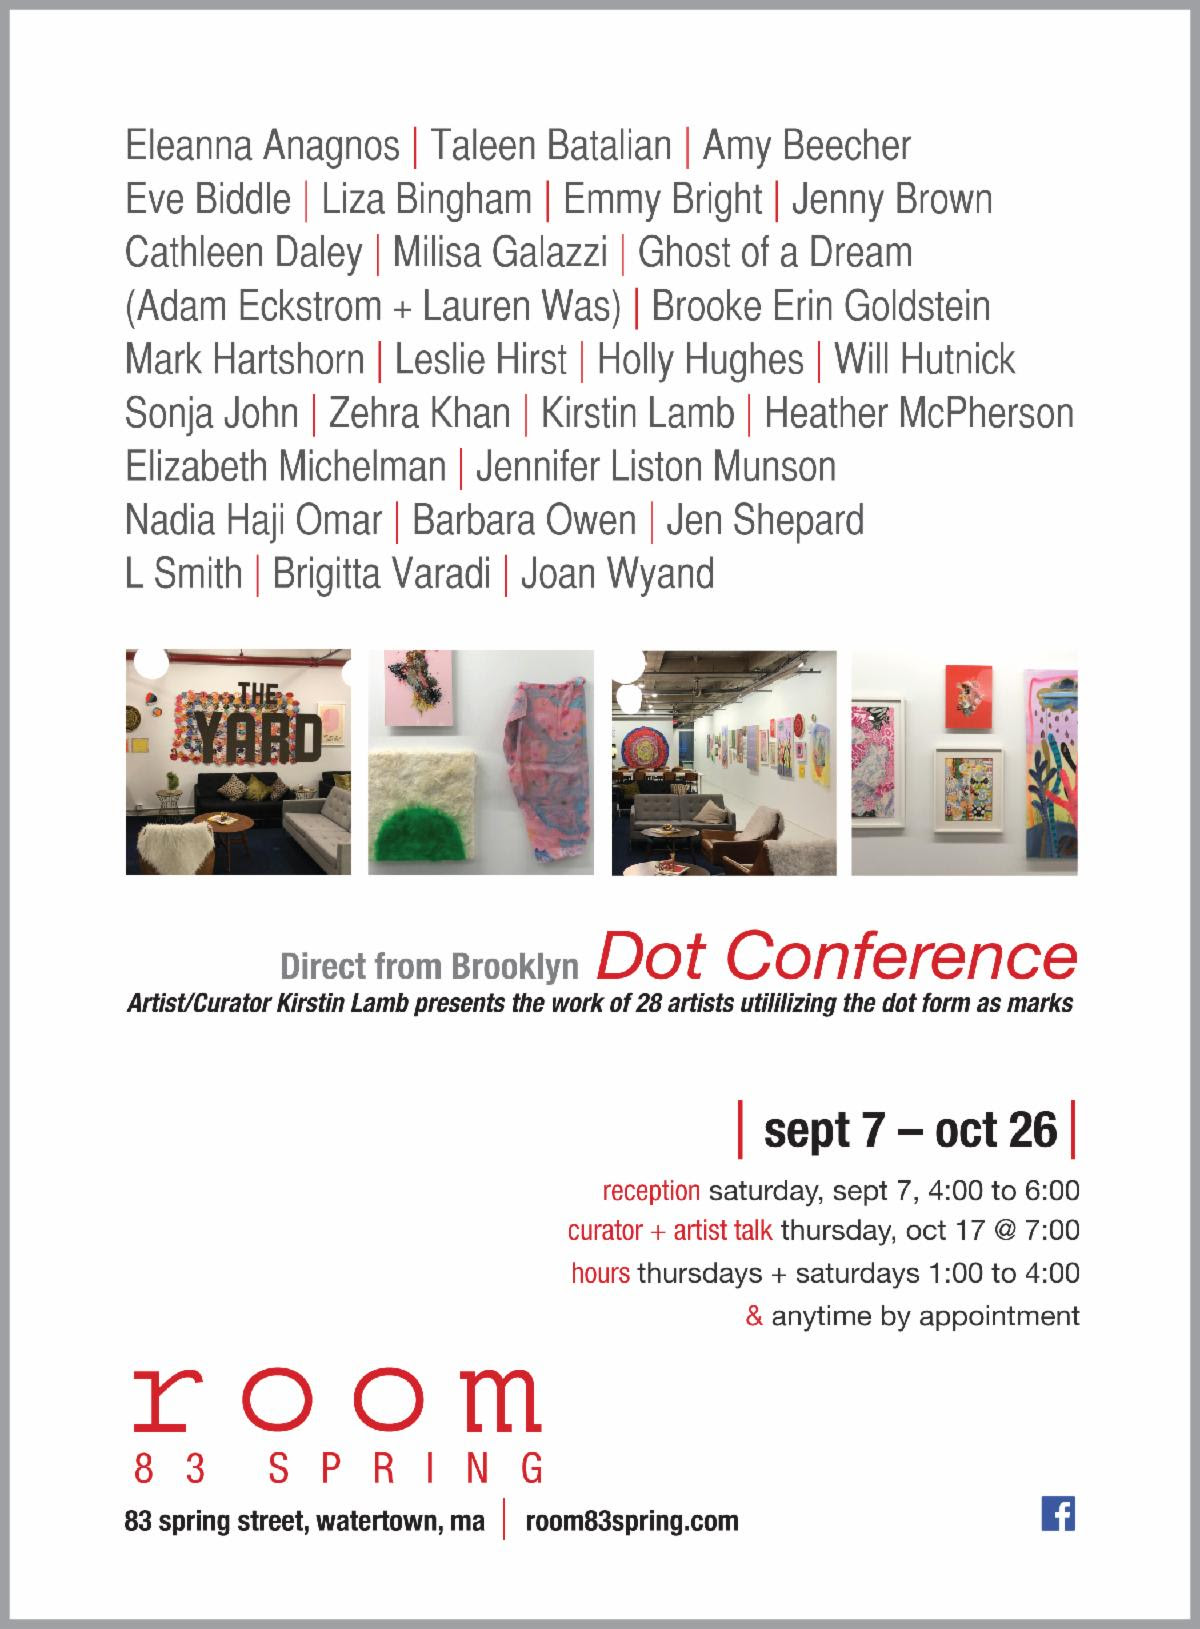 Dot Conference is traveling! Come see the second edition at Room 83 Spring in Watertown, MA with a reception on September 7th! :)